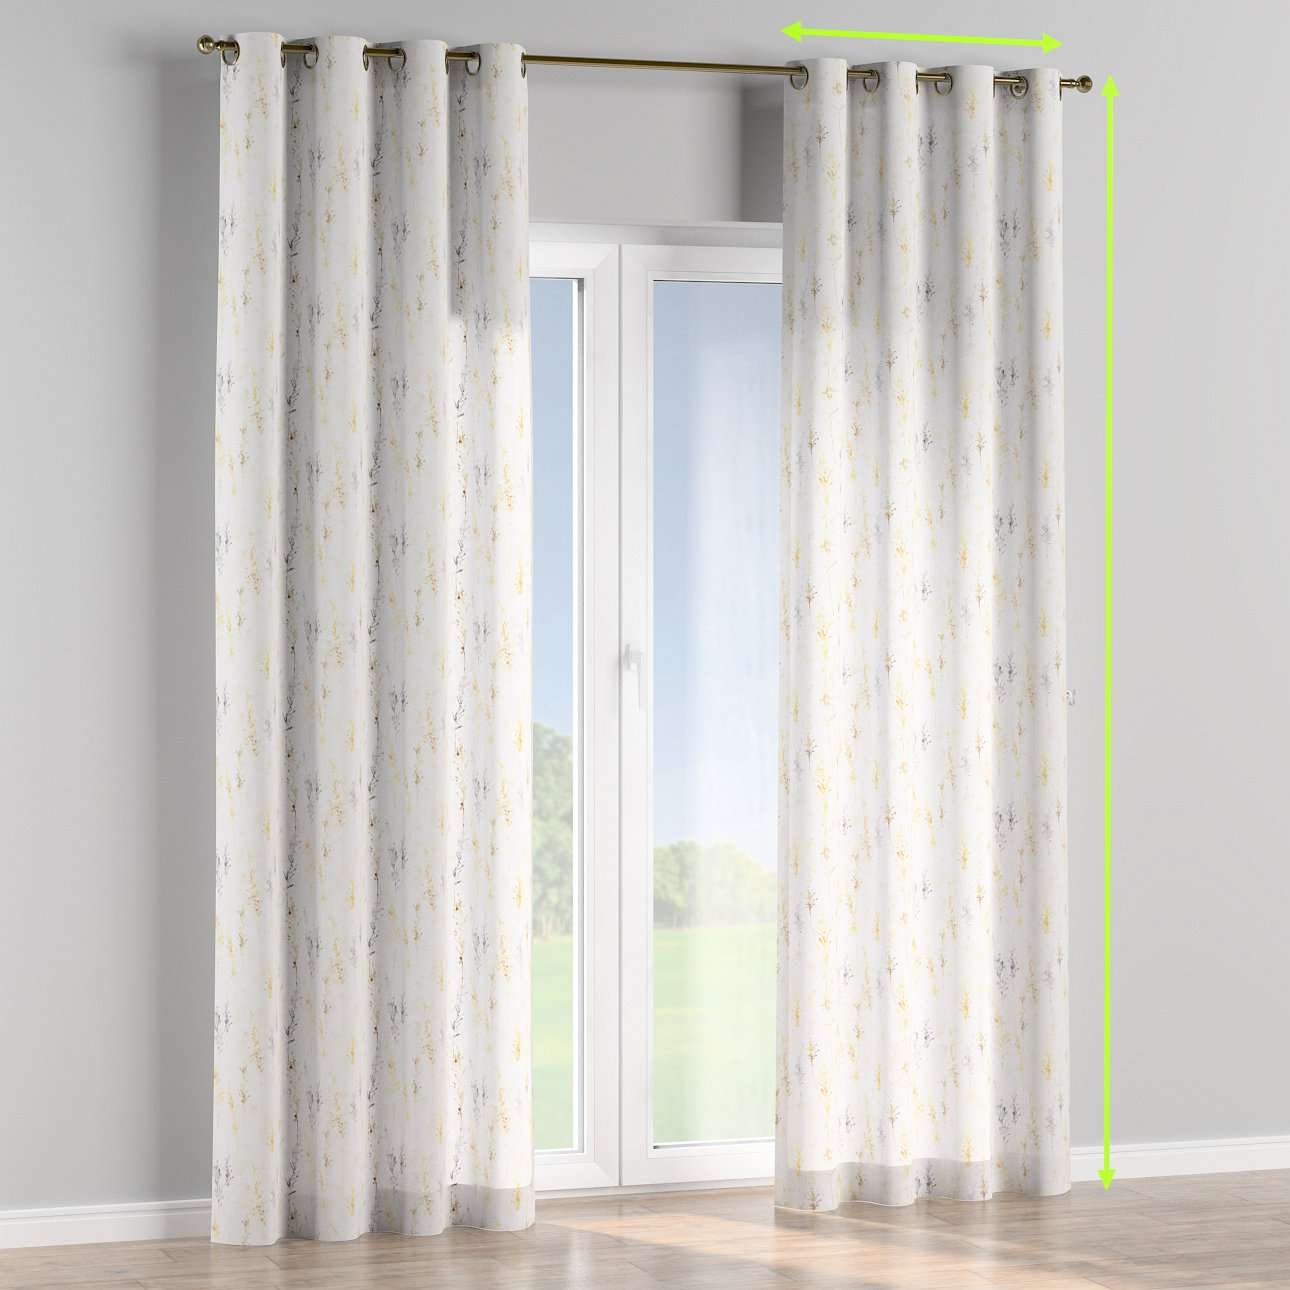 Eyelet lined curtains in collection Acapulco, fabric: 141-36